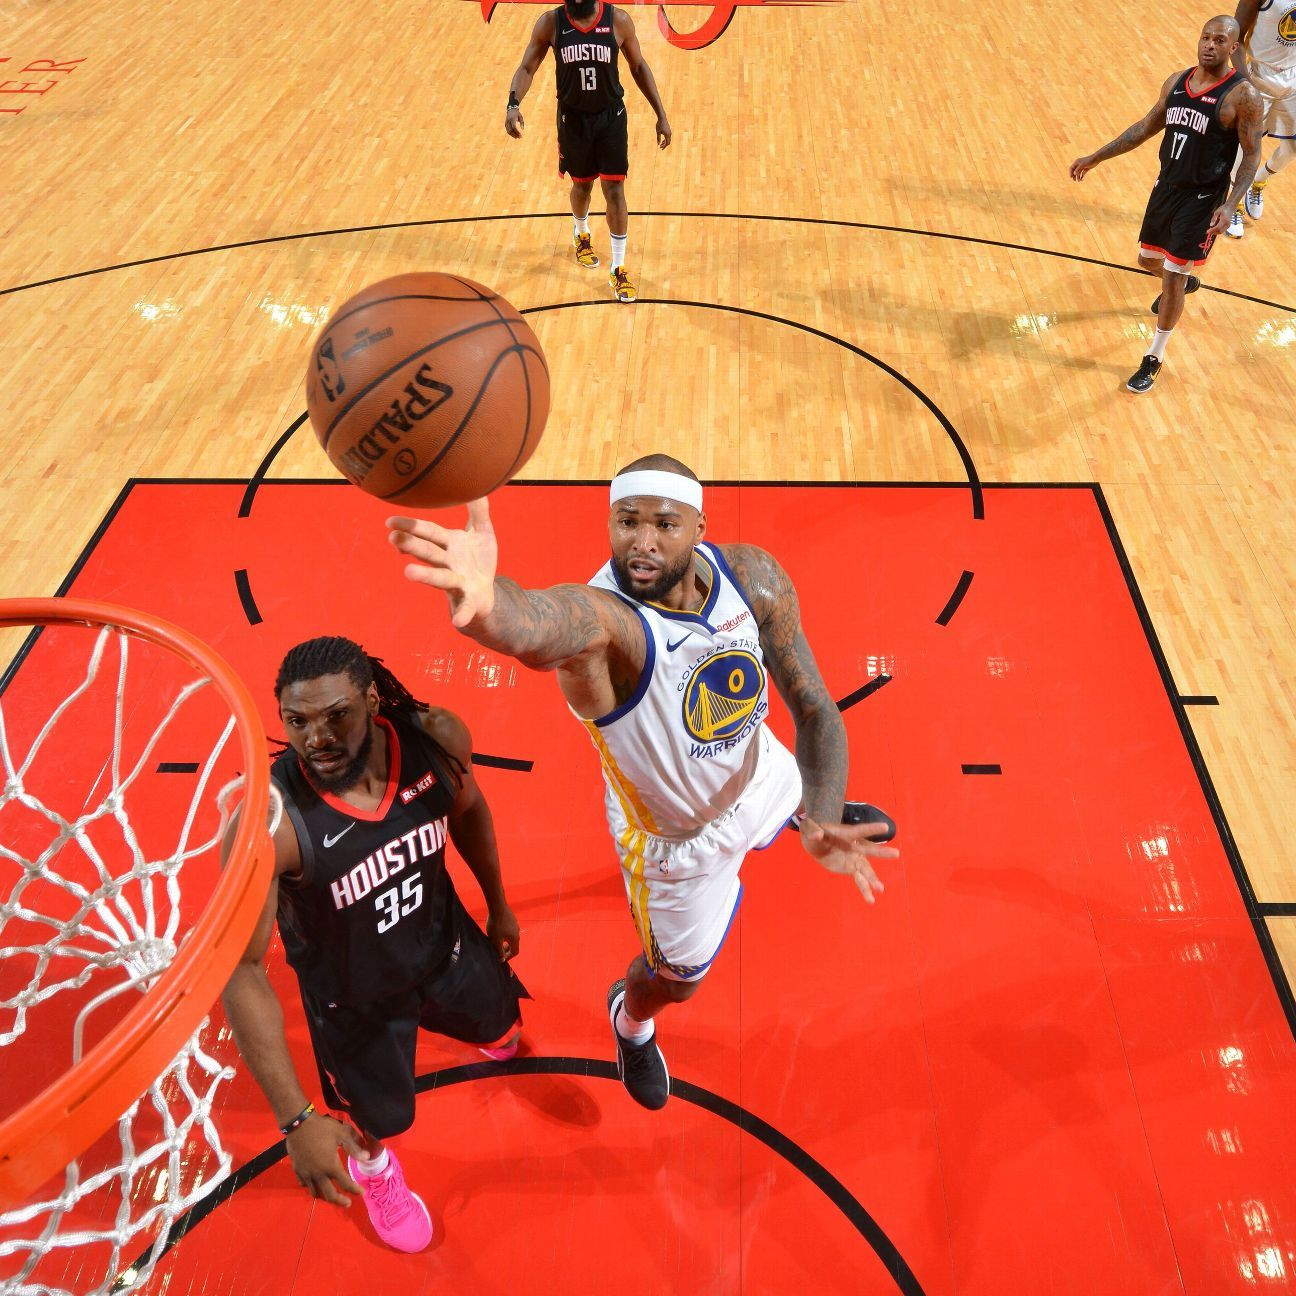 Harden shrugs off loss; D'Antoni warns of trouble r514181 1296x1296 1 1